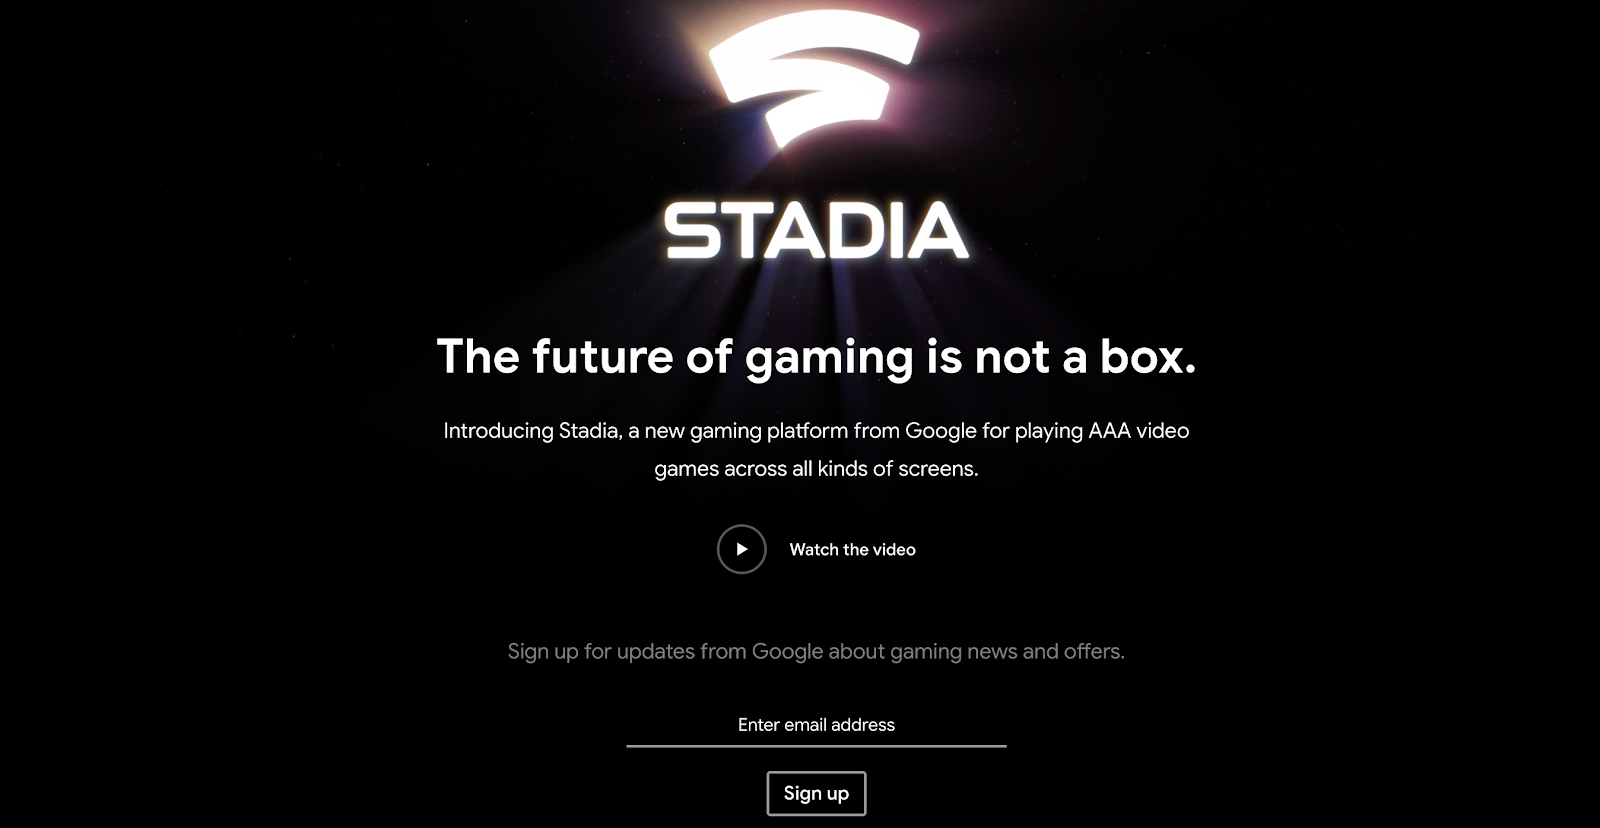 Google Stadia CTA Signup Example